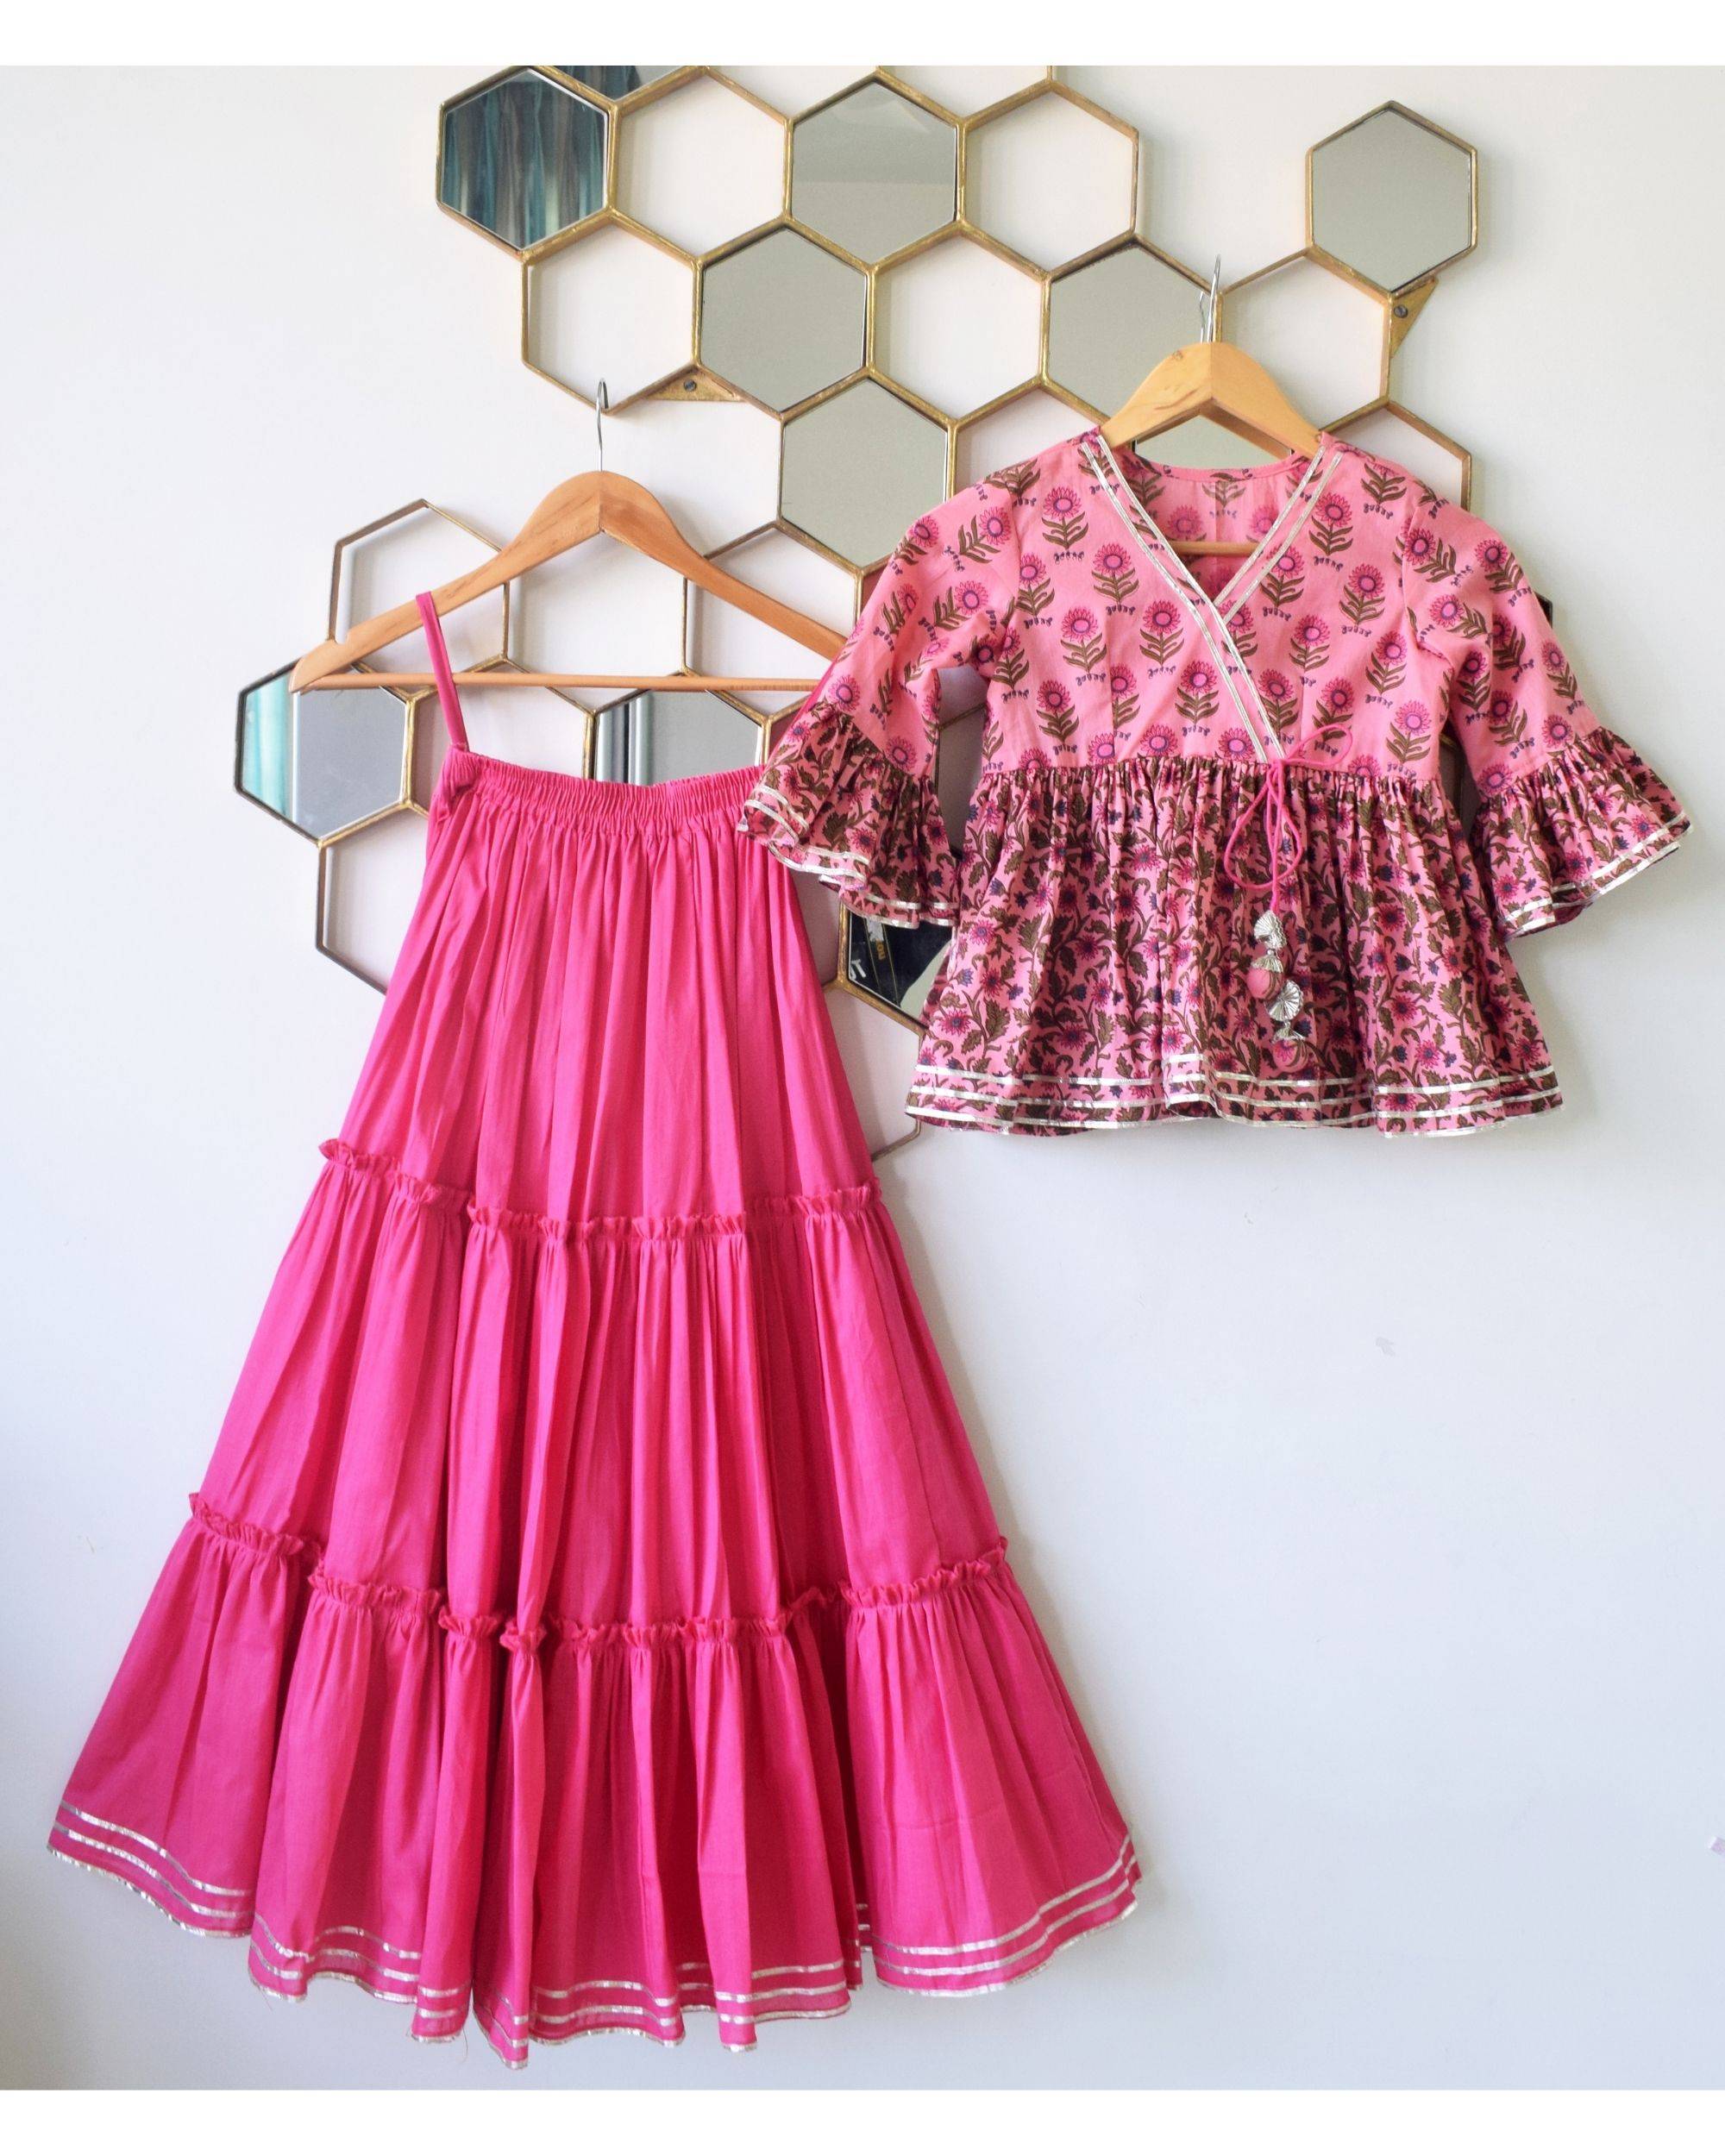 Pink floral printed ruffled peplum top with tiered skirt - Set Of Two